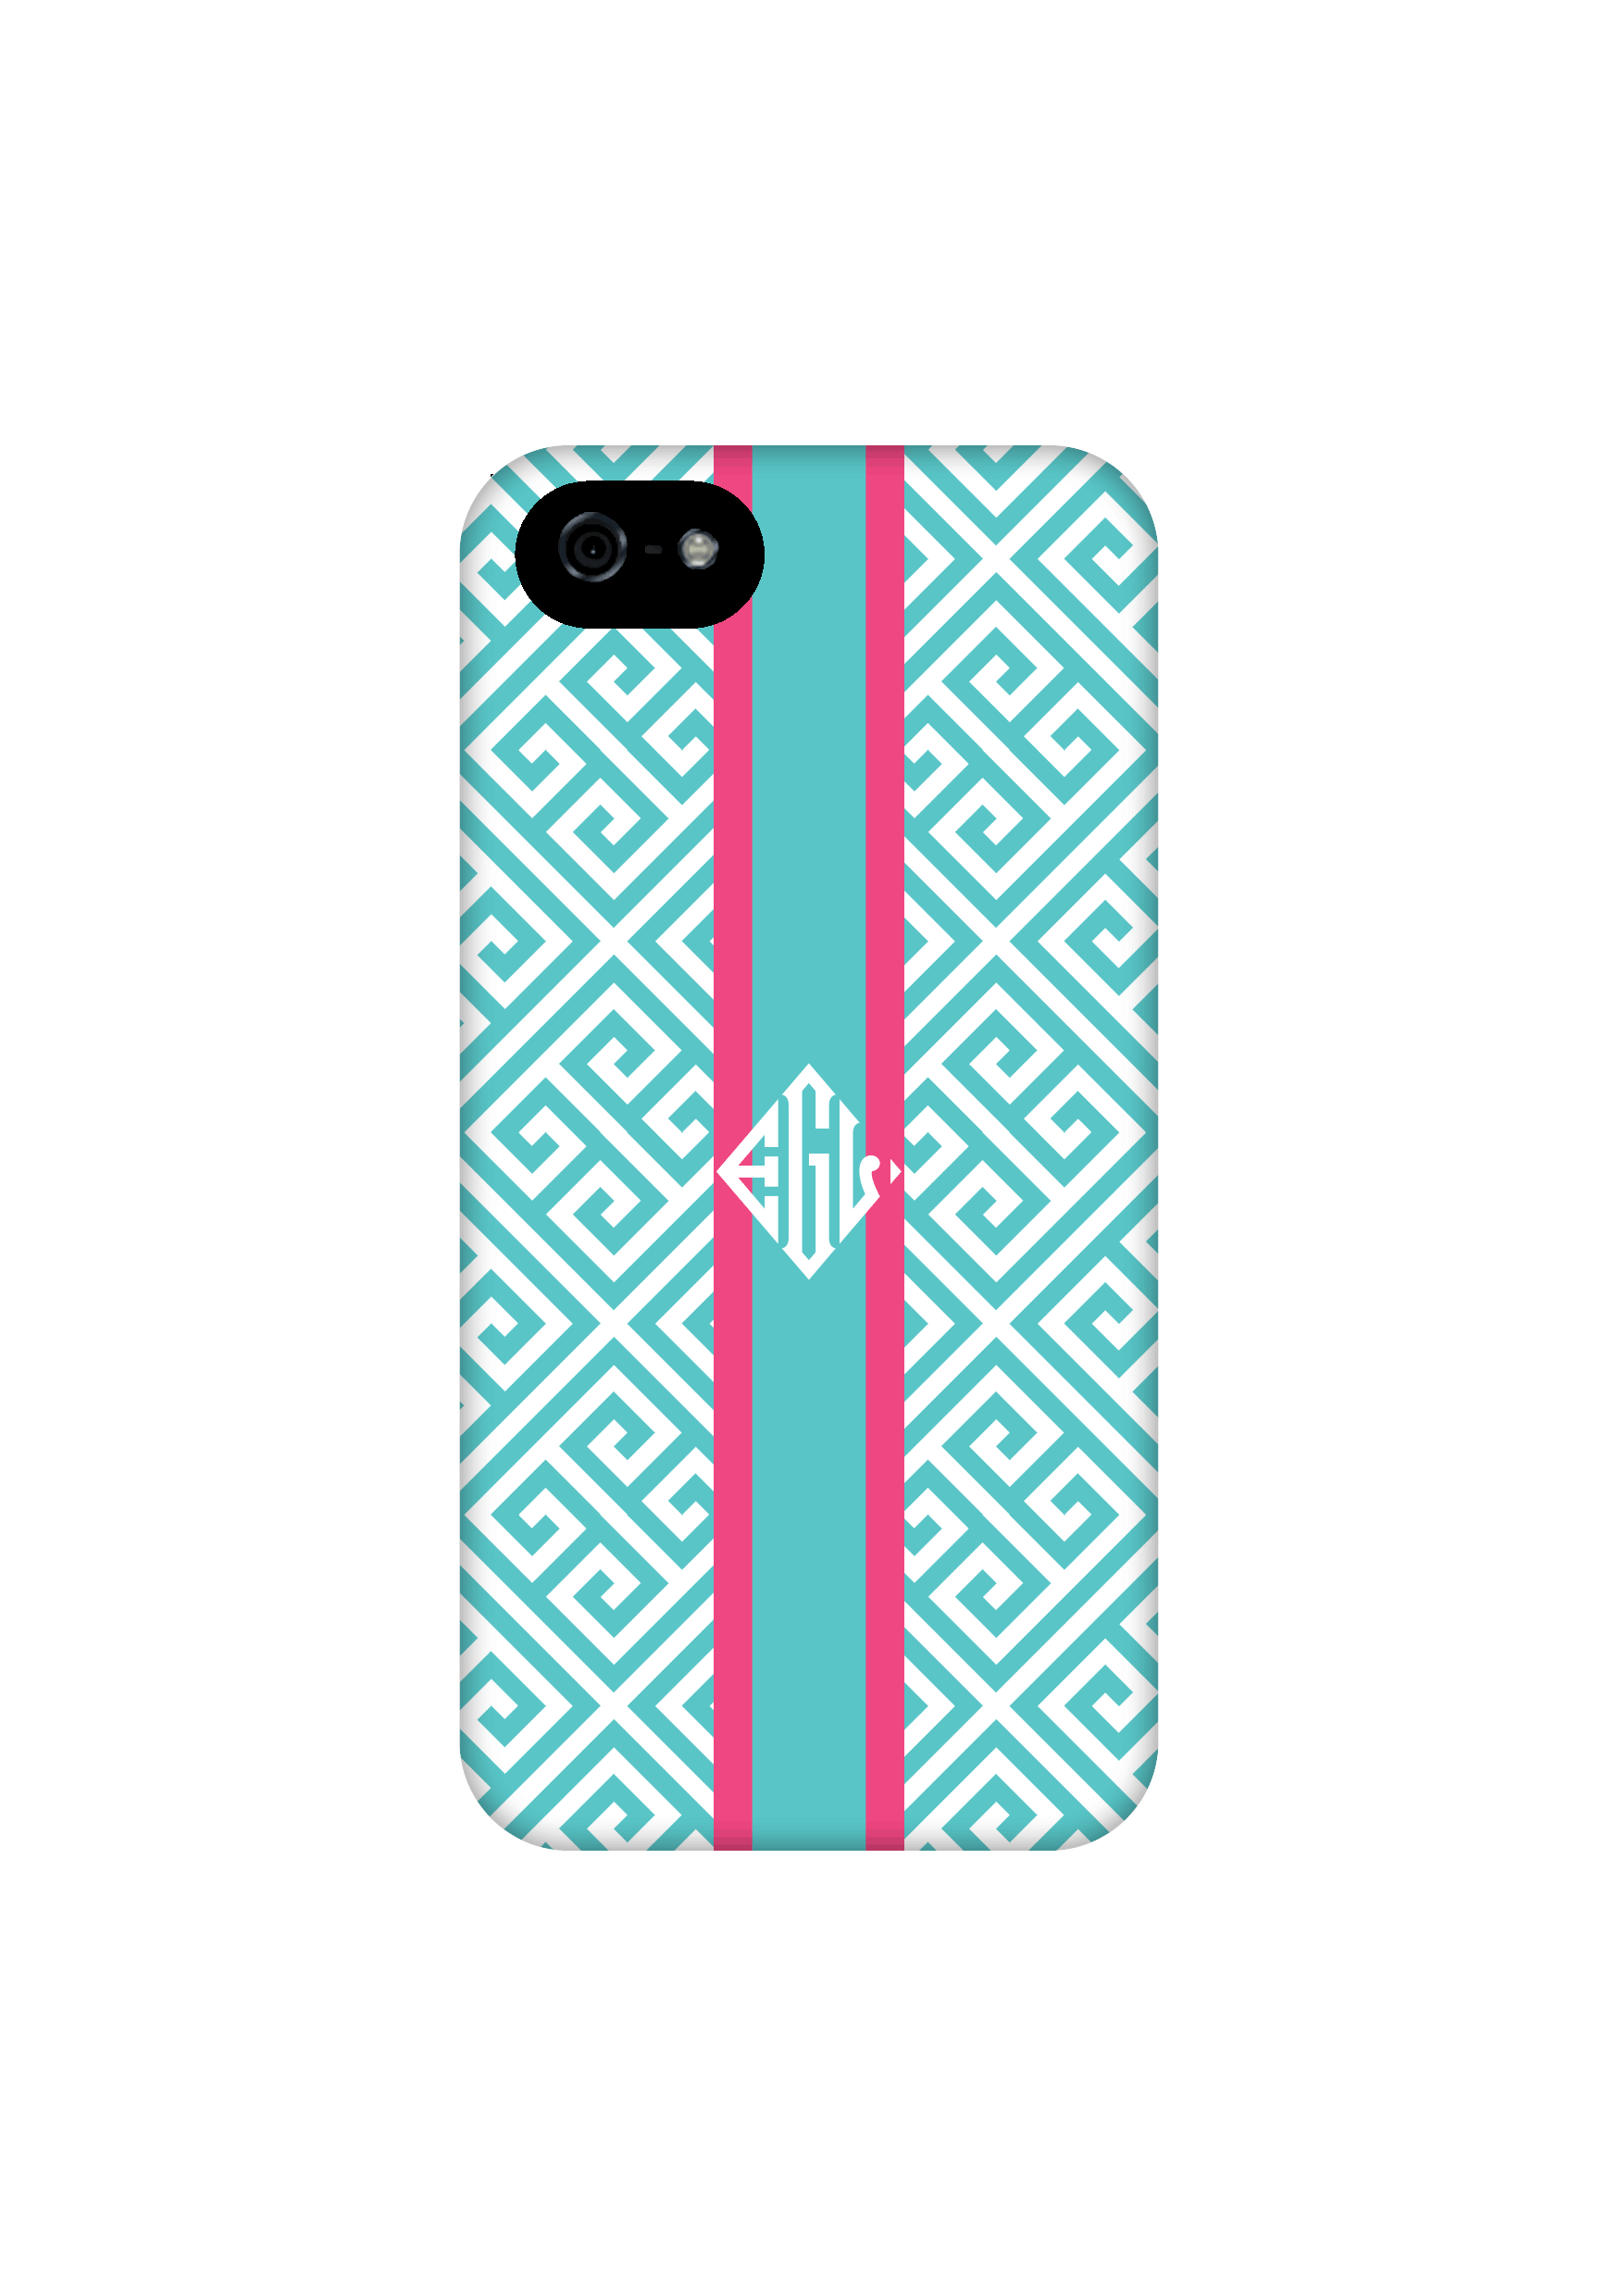 brand new 28102 41922 Aqua greek key monogram iPhone 6 case, custom iPhone 5c case, iPhone 5s  case, monogrammed iPhone case, iPhone 4s case, iPhone 6 plus c